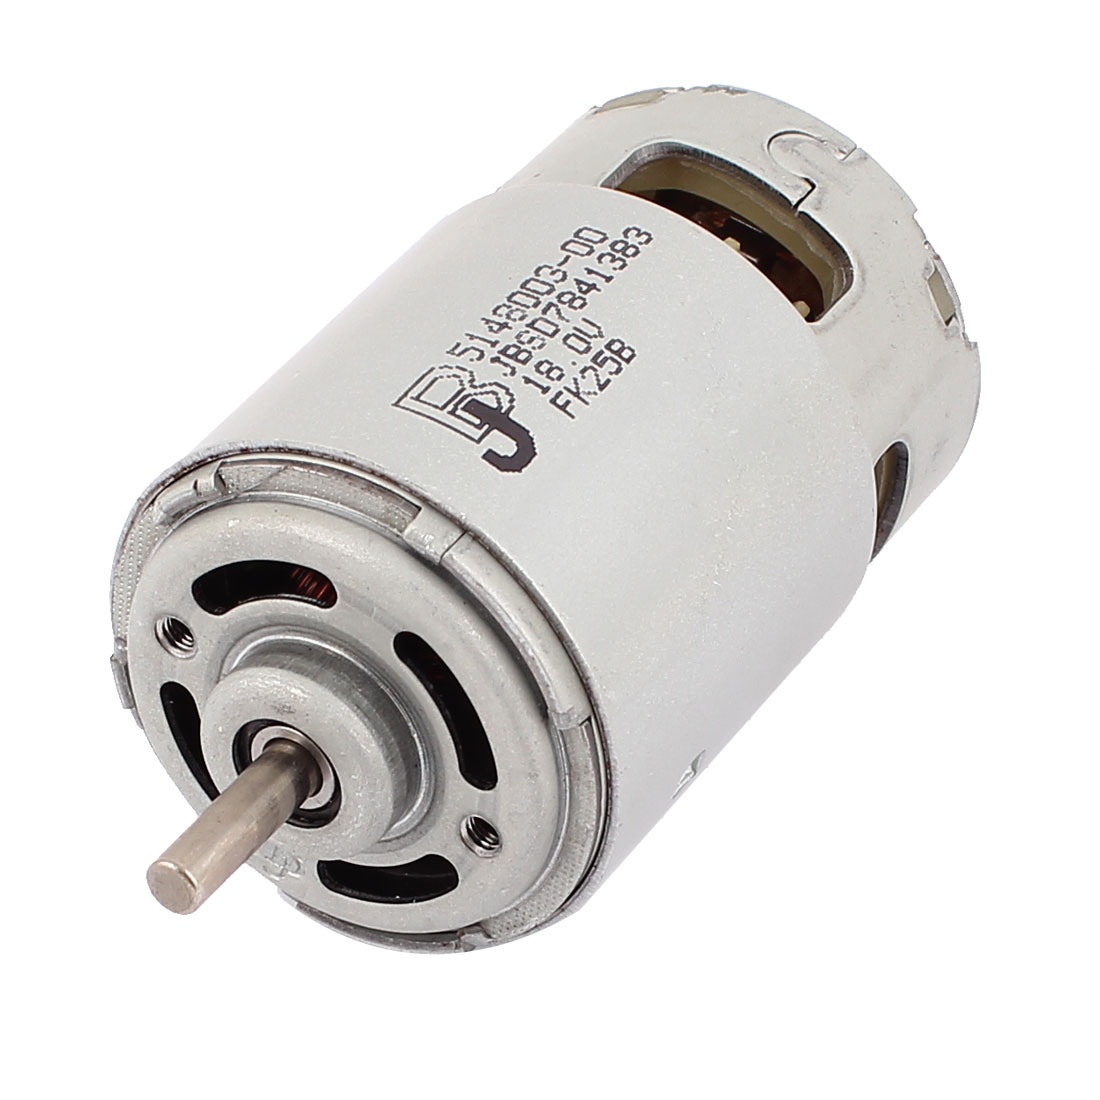 DC 18V 18000RPM 5mm Dia Shaft Cylinder 2 Pin Terminals Electric DC Motor